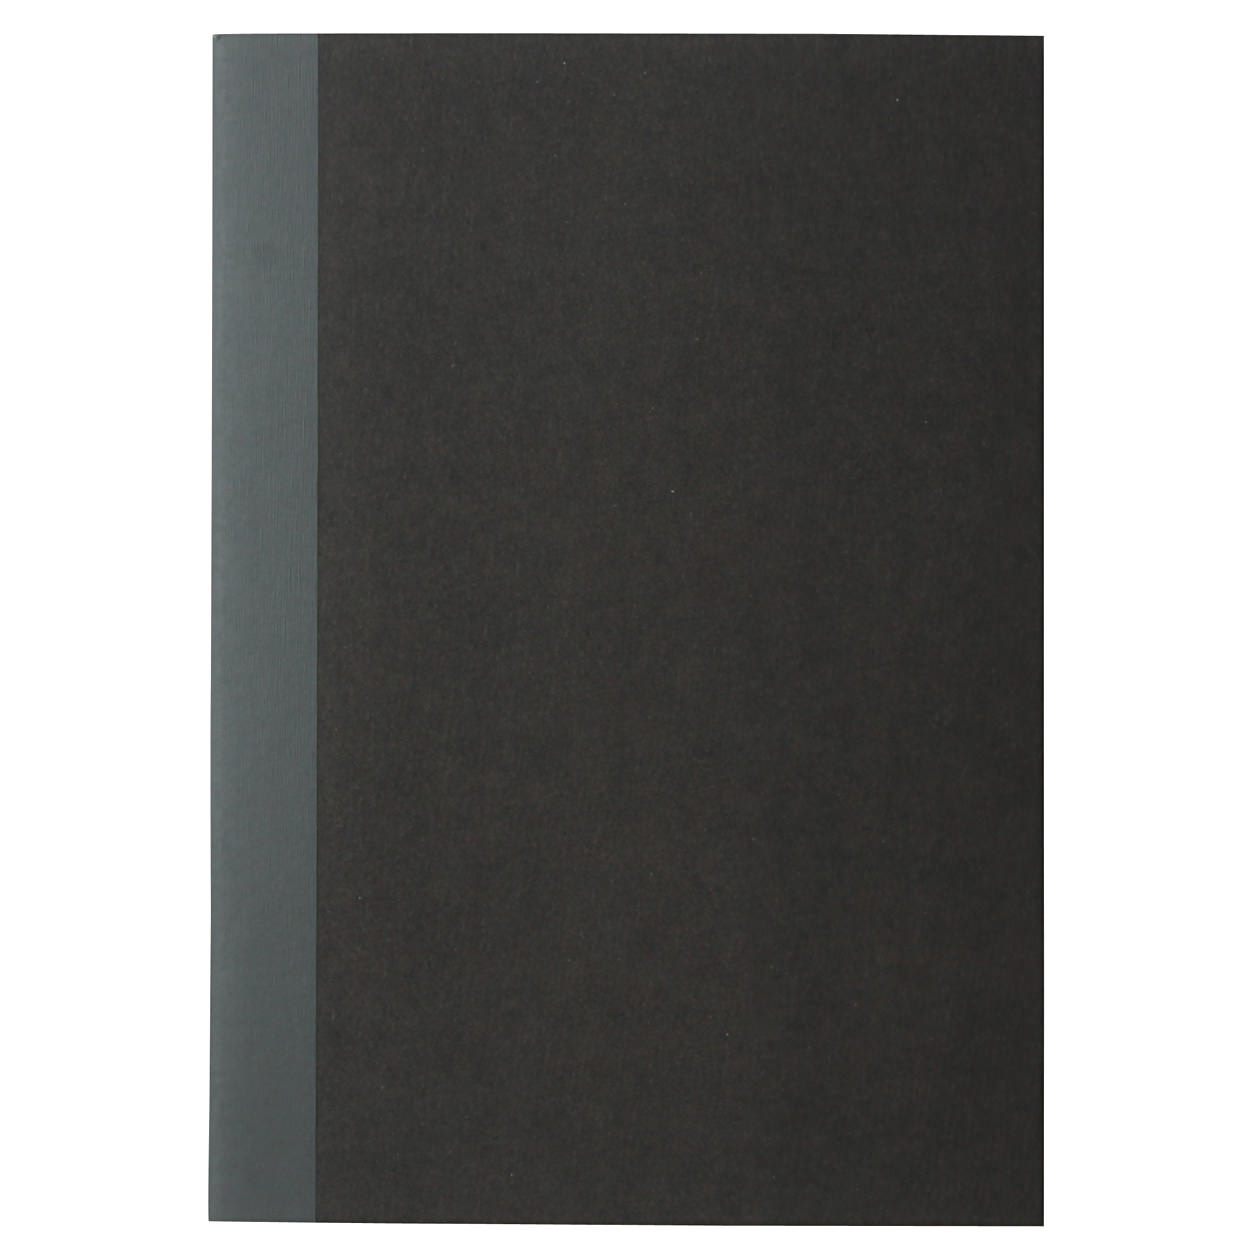 B6 Recycled Notebook